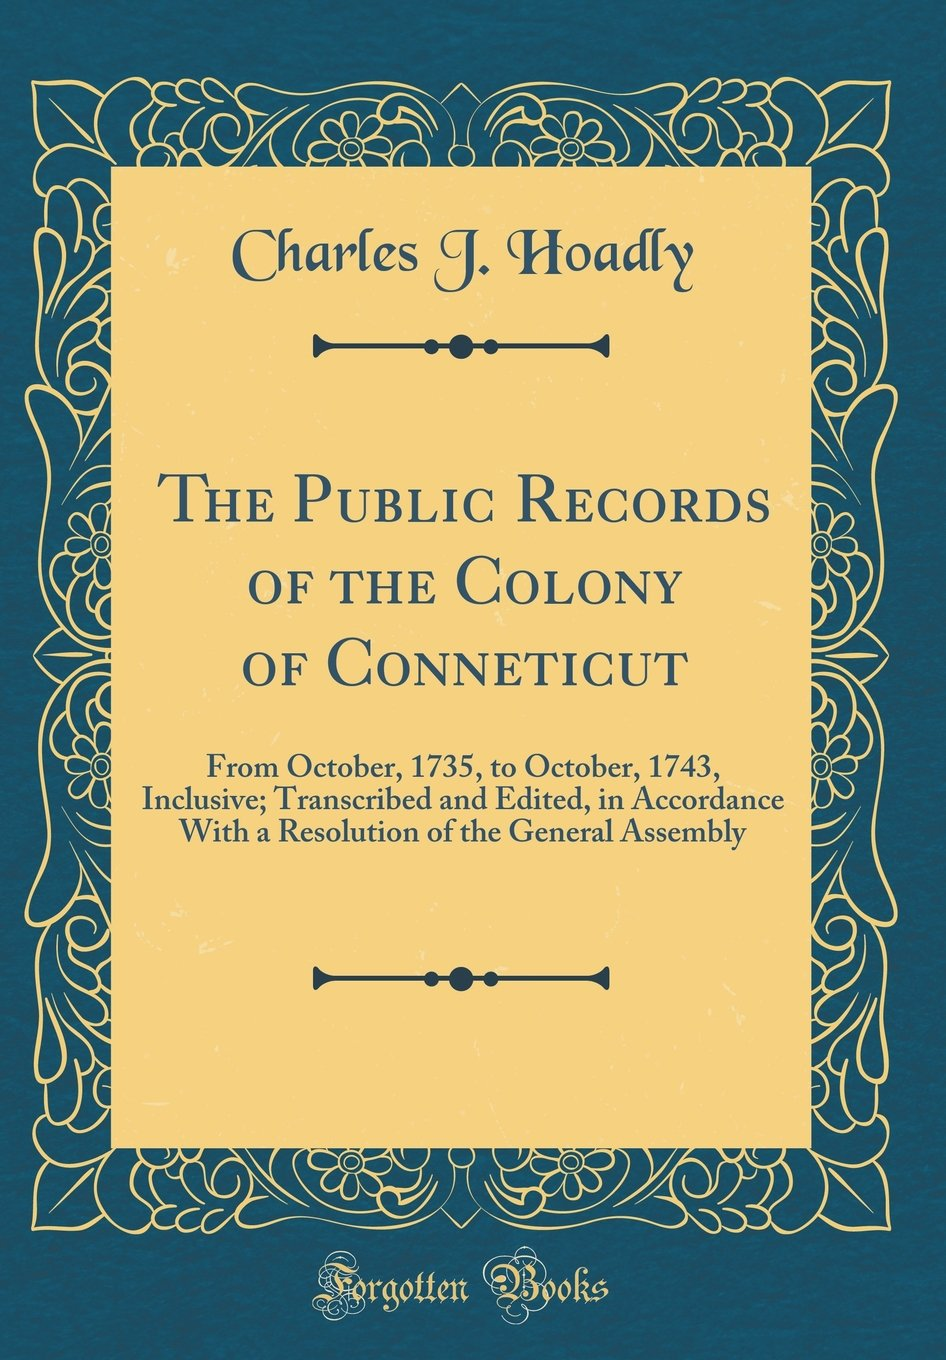 The Public Records of the Colony of Conneticut: From October, 1735, to October, 1743, Inclusive; Transcribed and Edited, in Accordance With a Resolution of the General Assembly (Classic Reprint) pdf epub